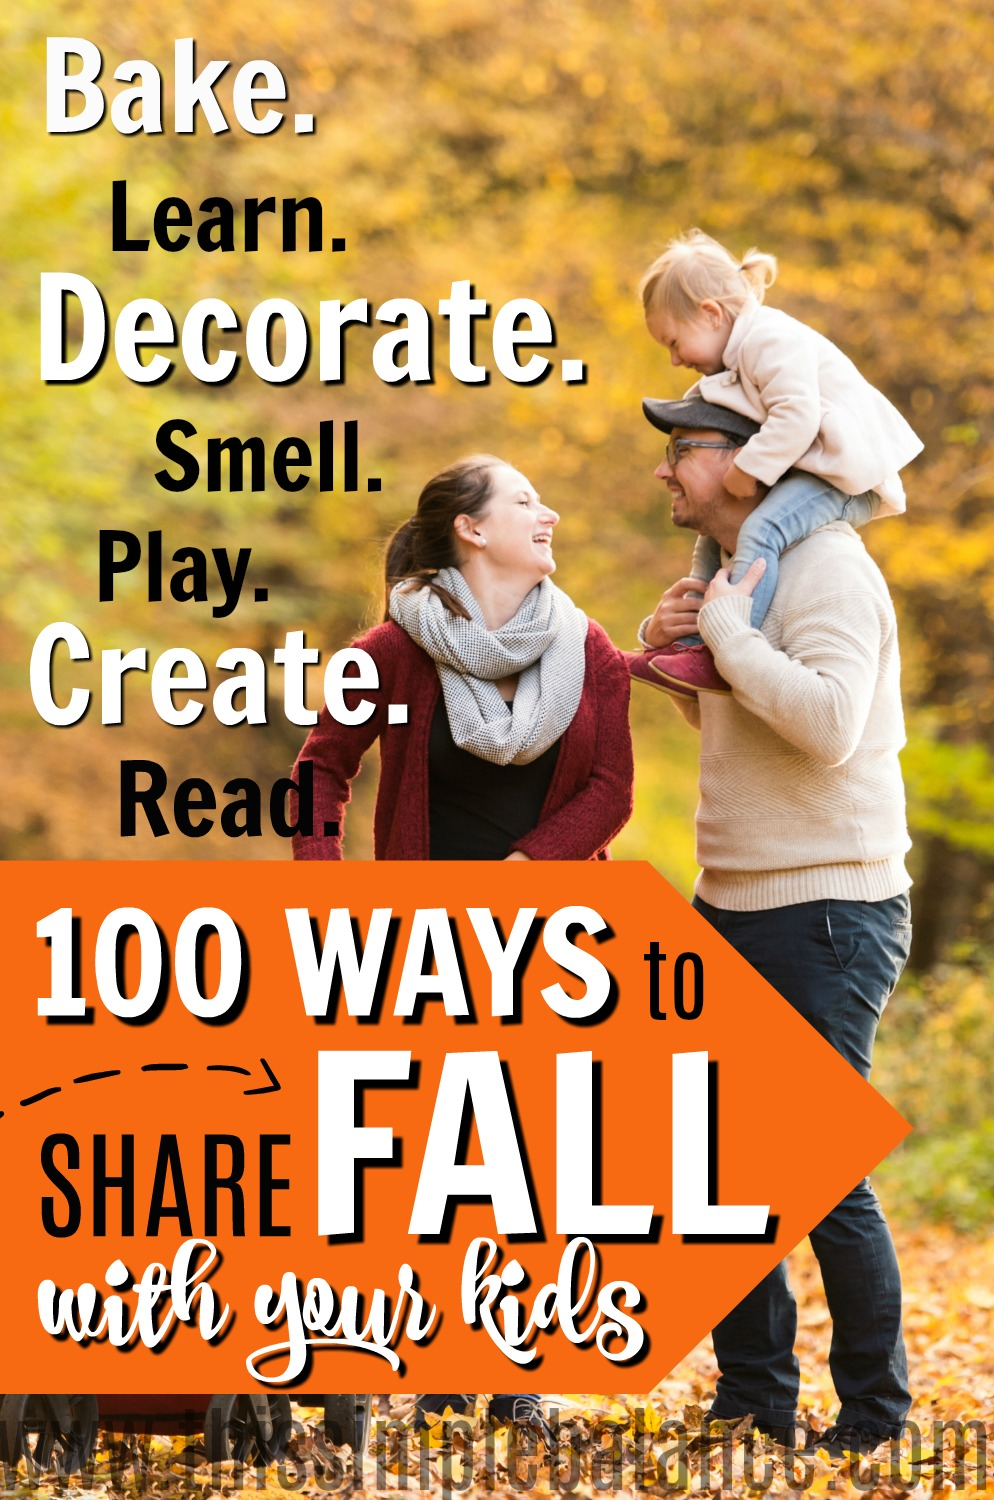 Do you absolutely LOVE fall - like get just as excited for fall as you do Christmas? If you want your kids to love fall as much as you do, check out these fall recipes, books, crafts, decorations and SO MUCH more. Over 100 things (a fall bucket list, if you will) to make absolutely sure your kids LOVE fall. #fall